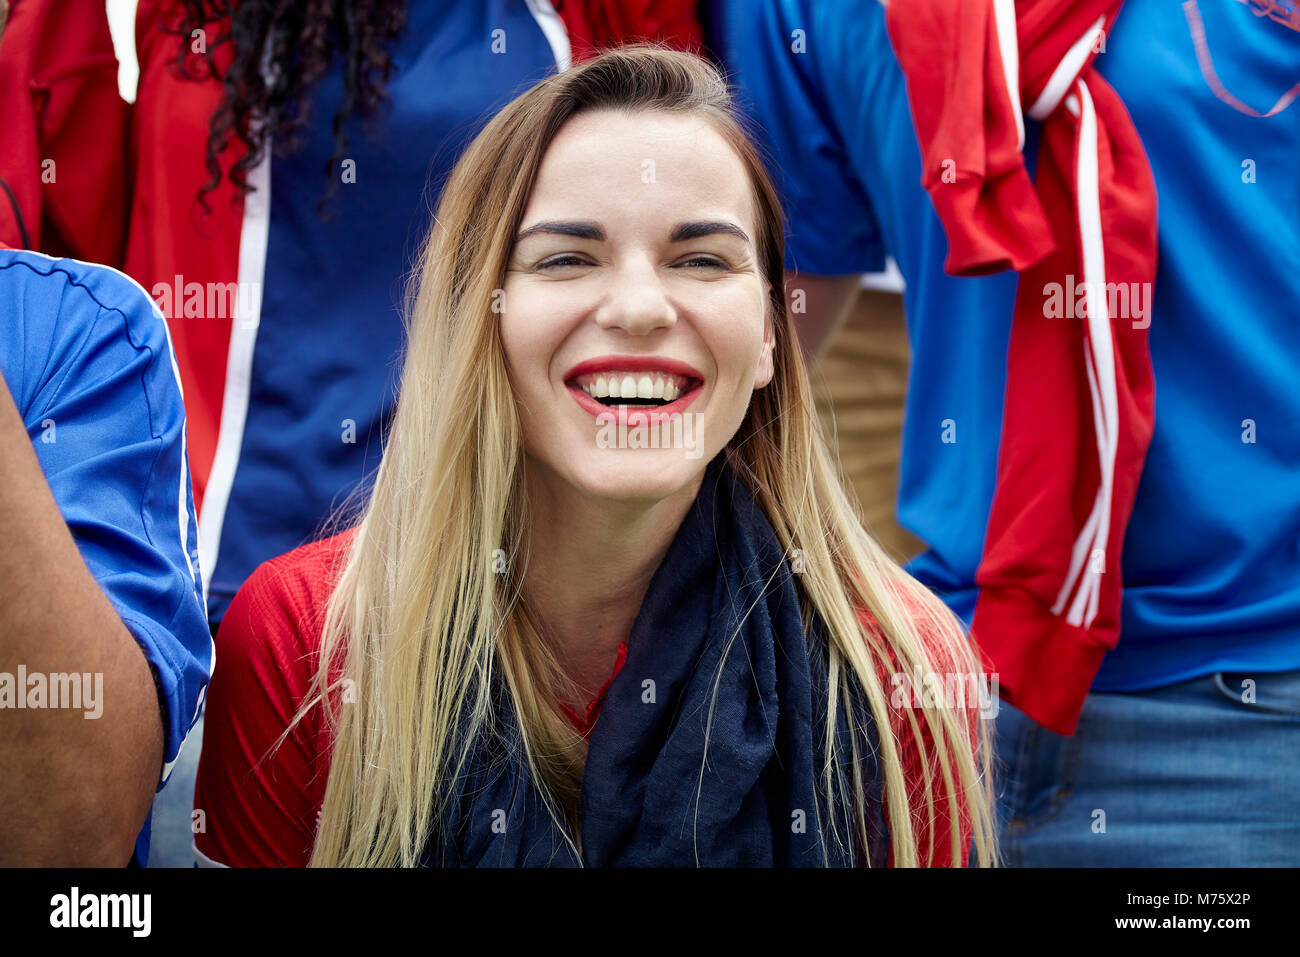 Woman watching football match, smiling cheerfully - Stock Image